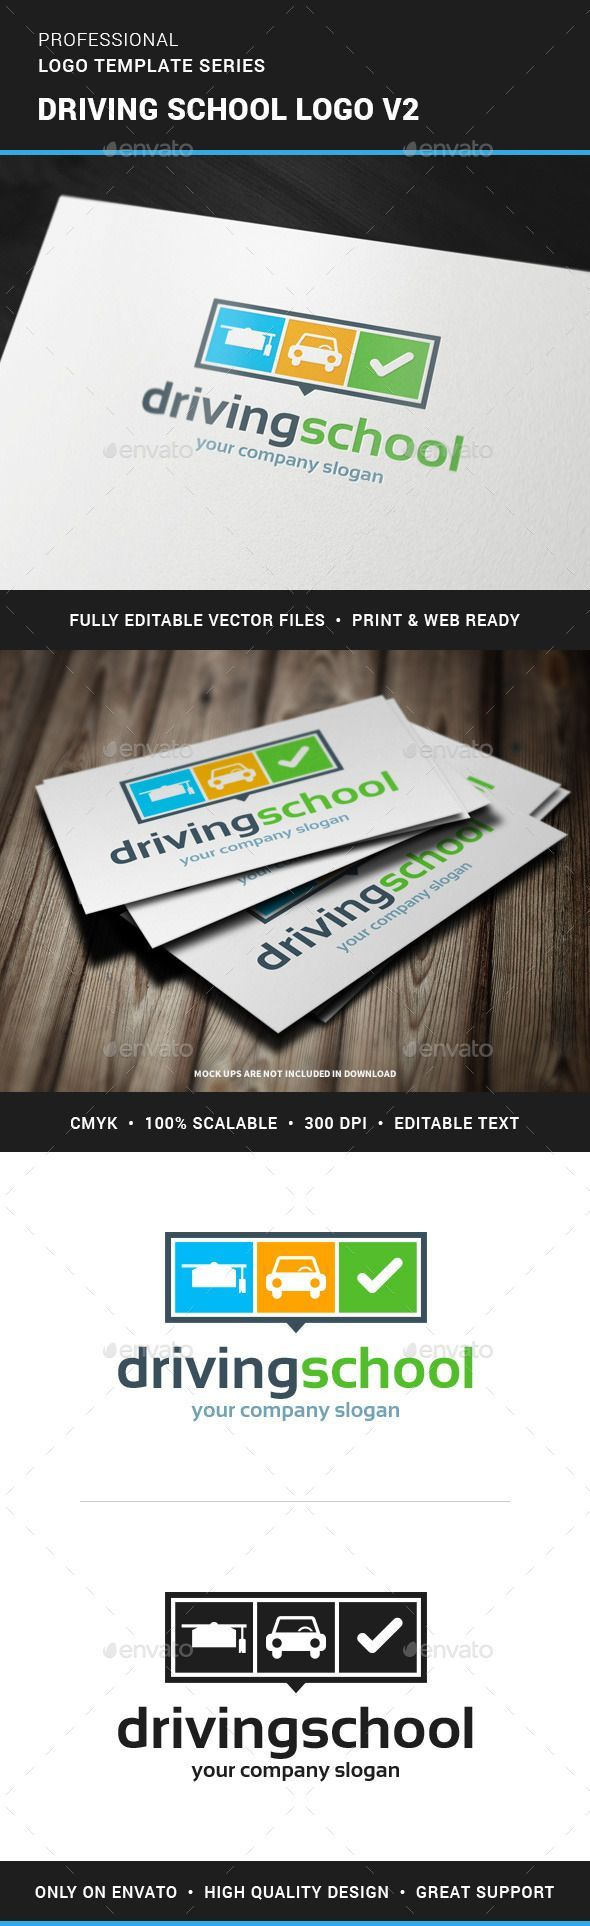 Driving School Logo Template Vector EPS, AI. Download here: http://graphicriver.net/item/driving-school-logo-v2/11874942?ref=ksioks